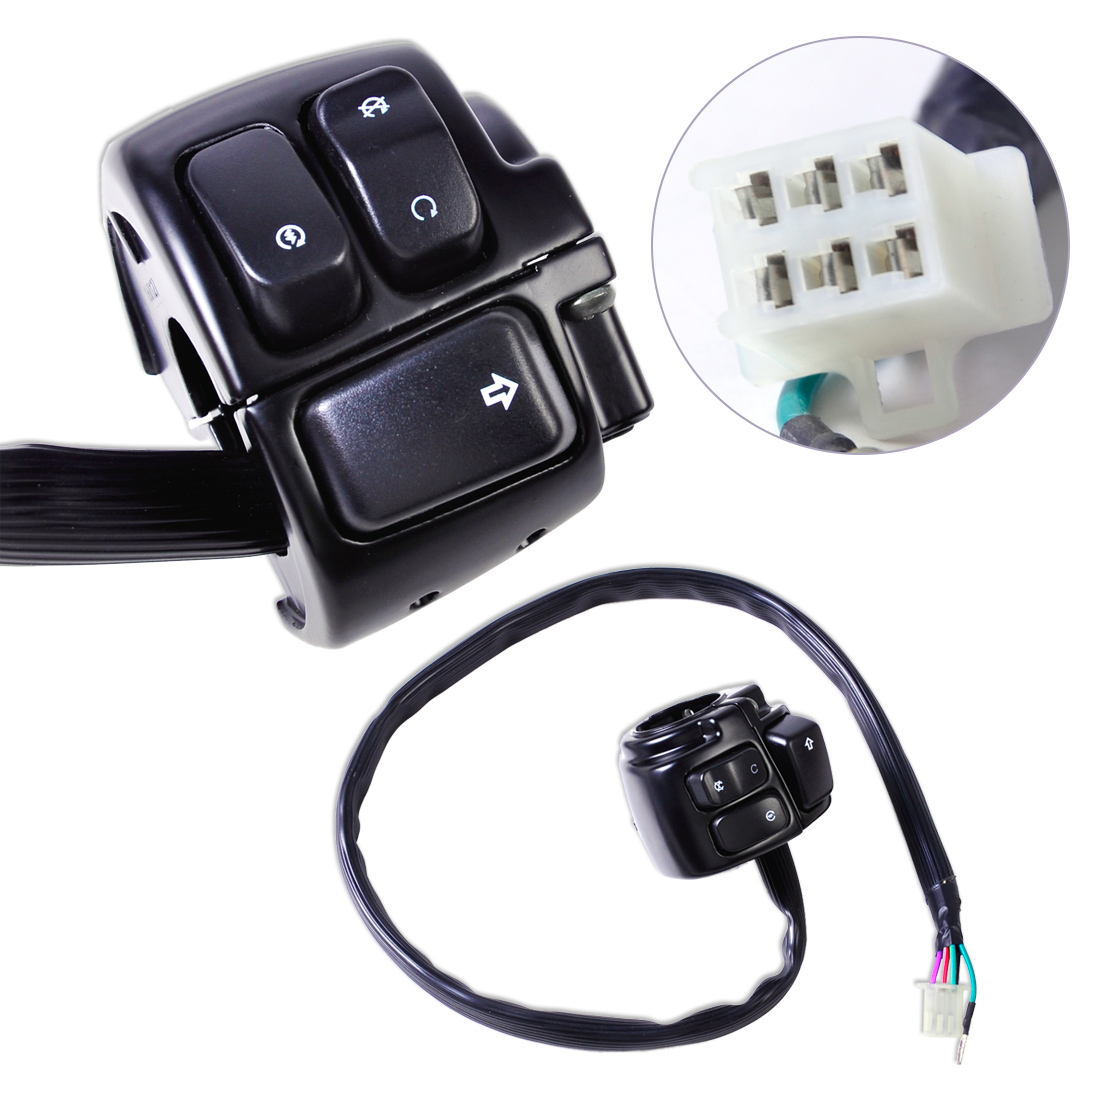 hight resolution of dwcx new motorcycle 1 handlebar ignition kill switch wiring harness for harley davidson softail dyna sportster 1200 883 v rod in motorcycle switches from